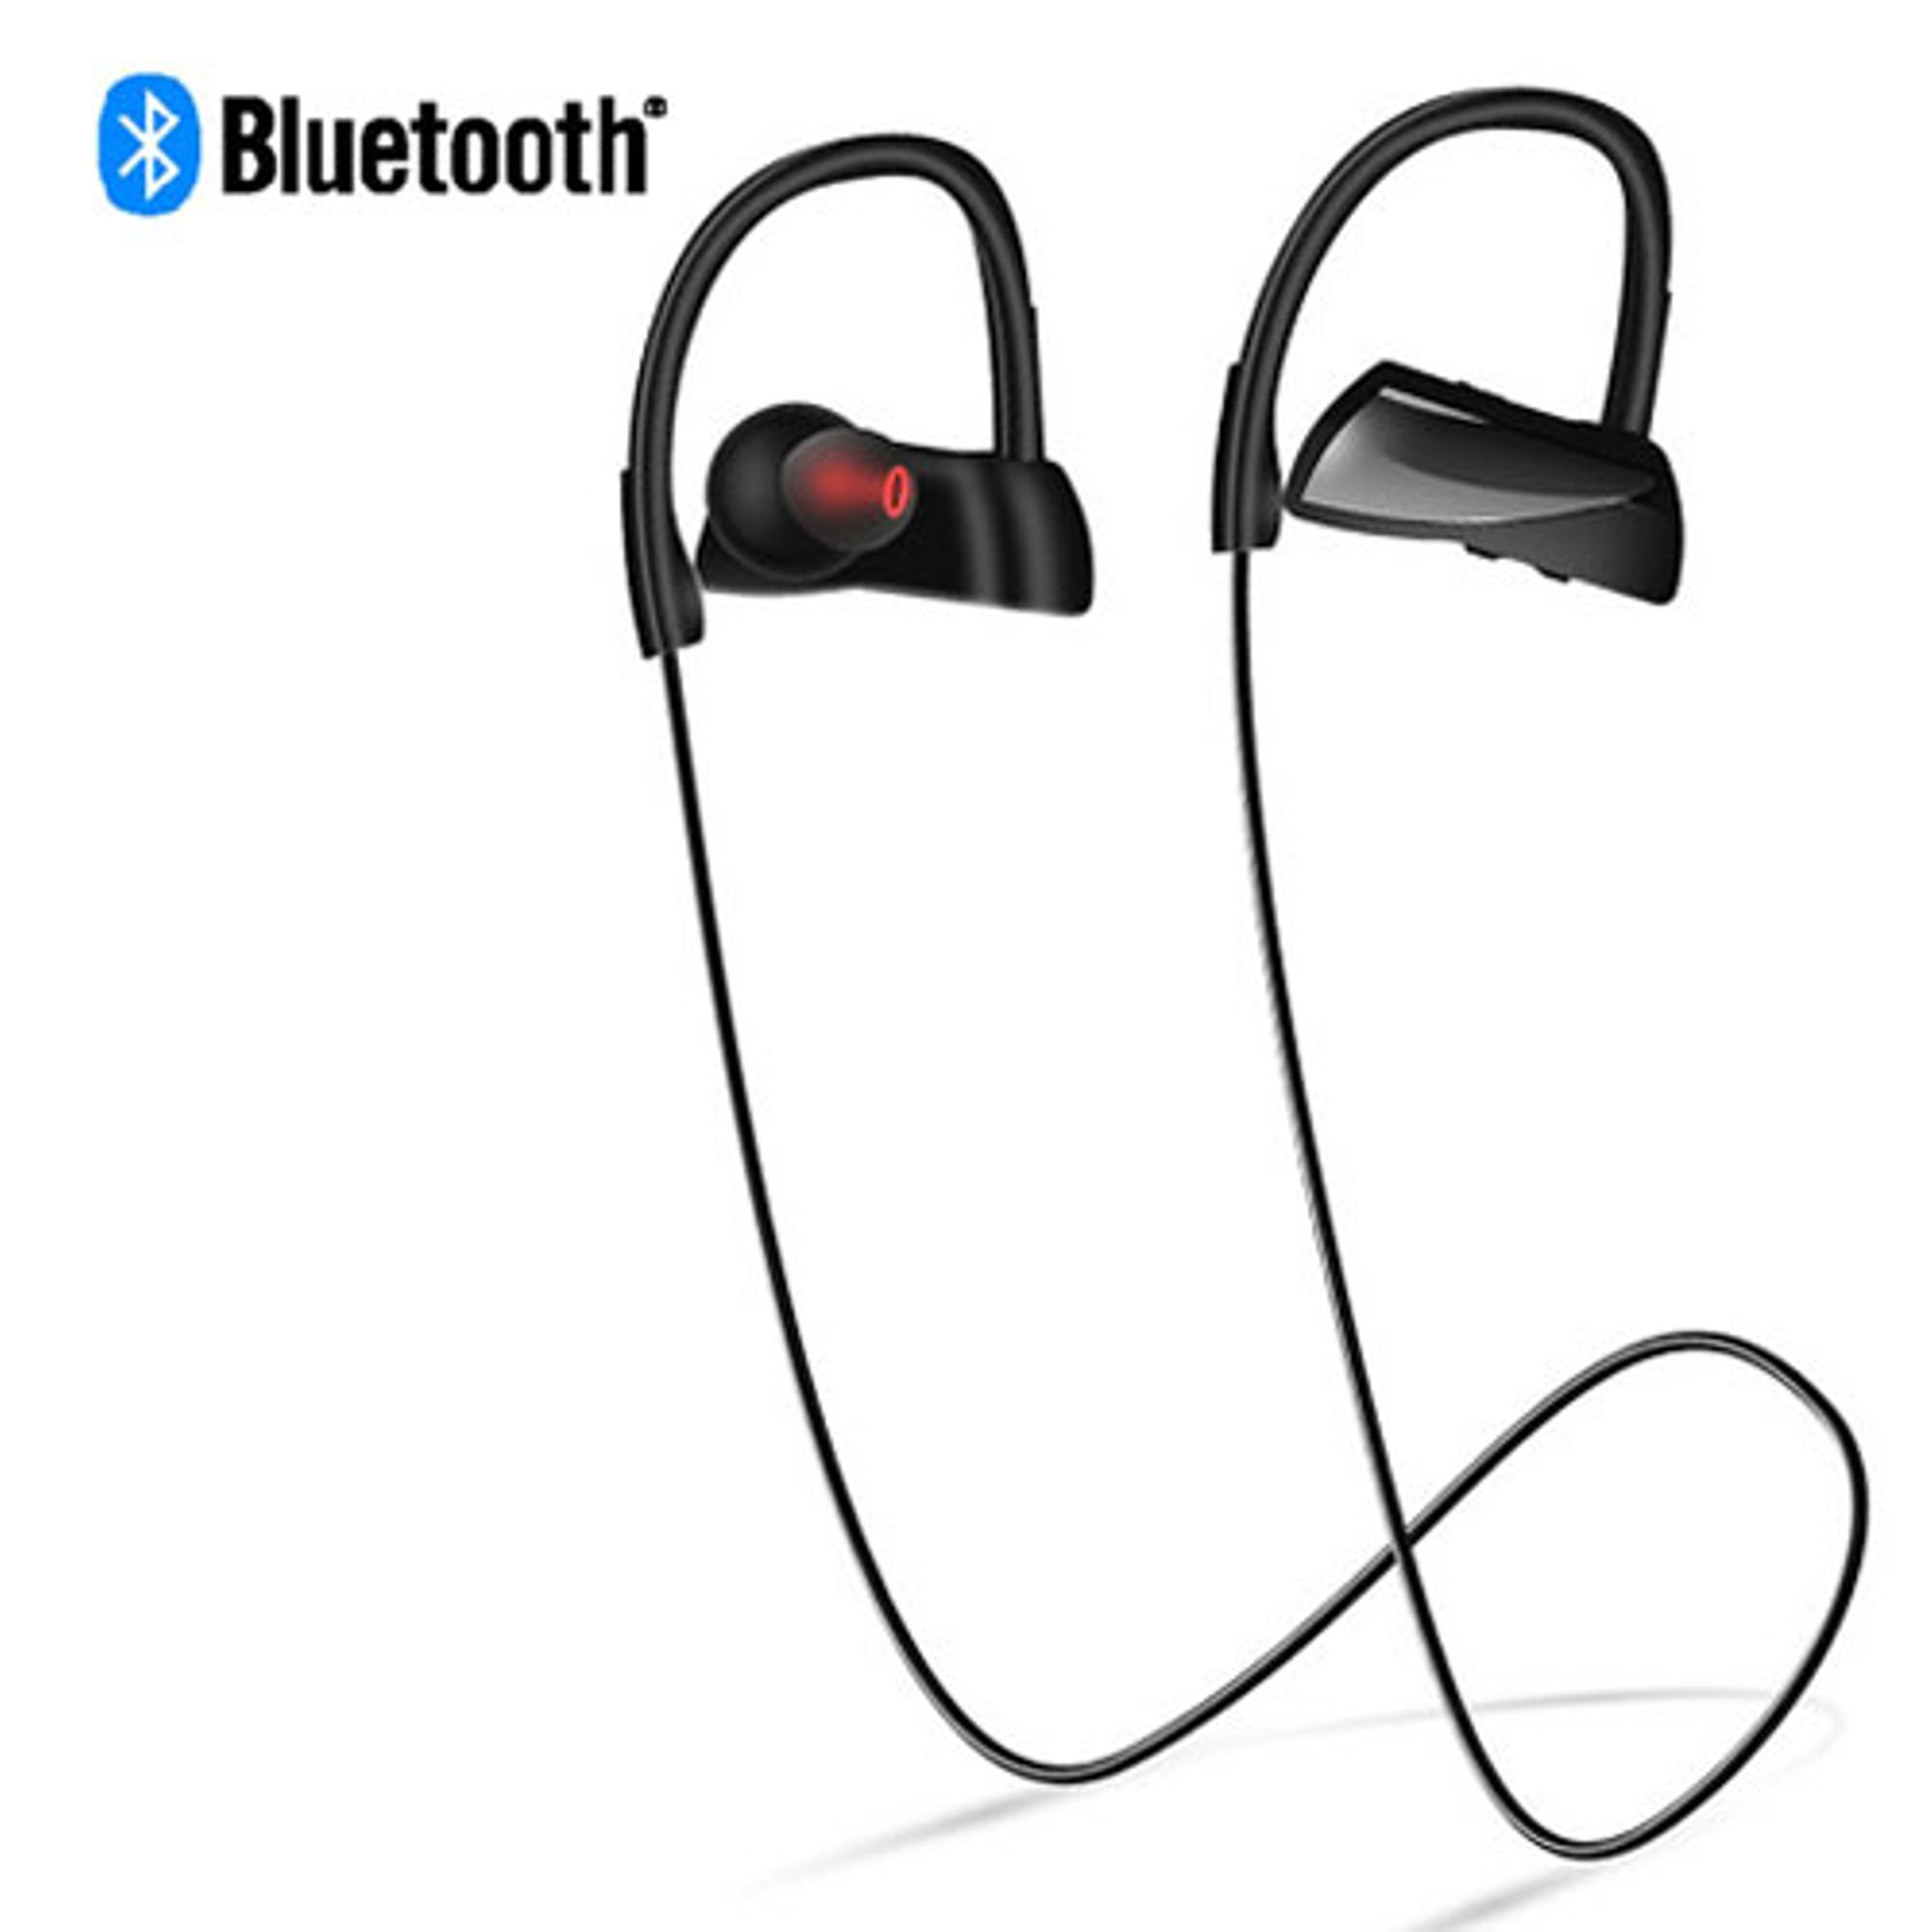 Insten Universal Rechargeable IPX7 Waterproof Wireless Bluetooth Headset Sports Stereo Handsfree Headphone for Apple iPhone X 7 8 Plus Cell phone - Black